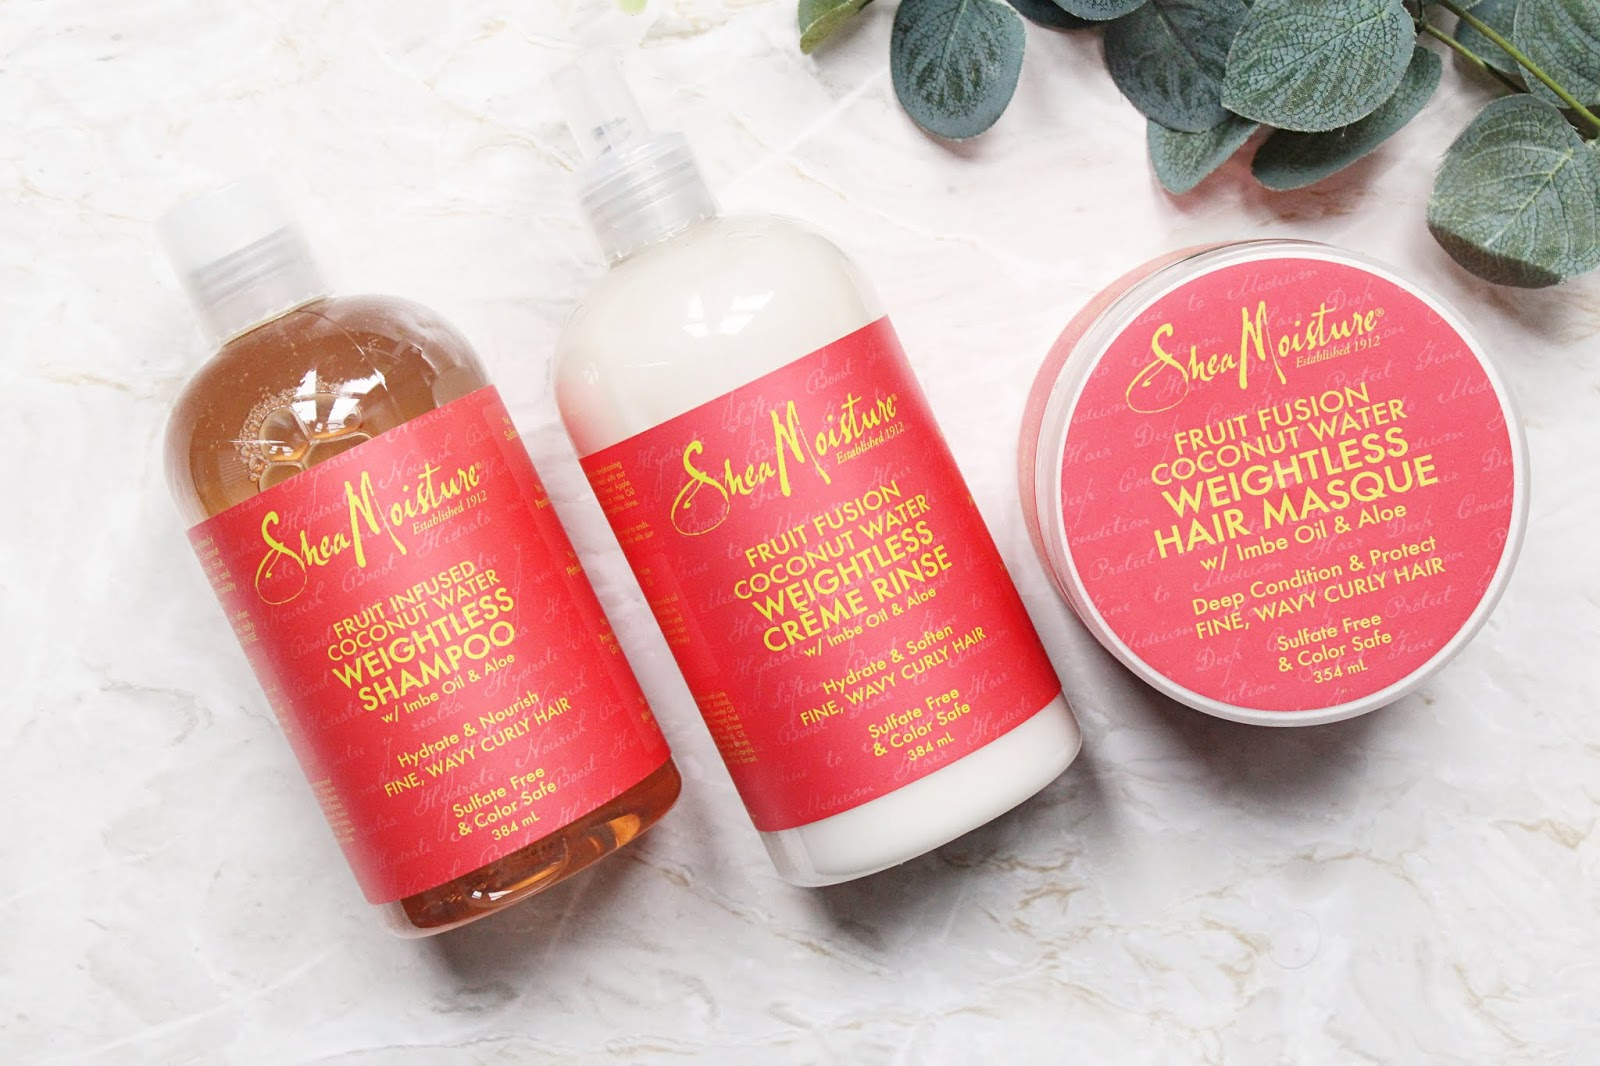 Shea Moisture Fruit Fusion Hair Care